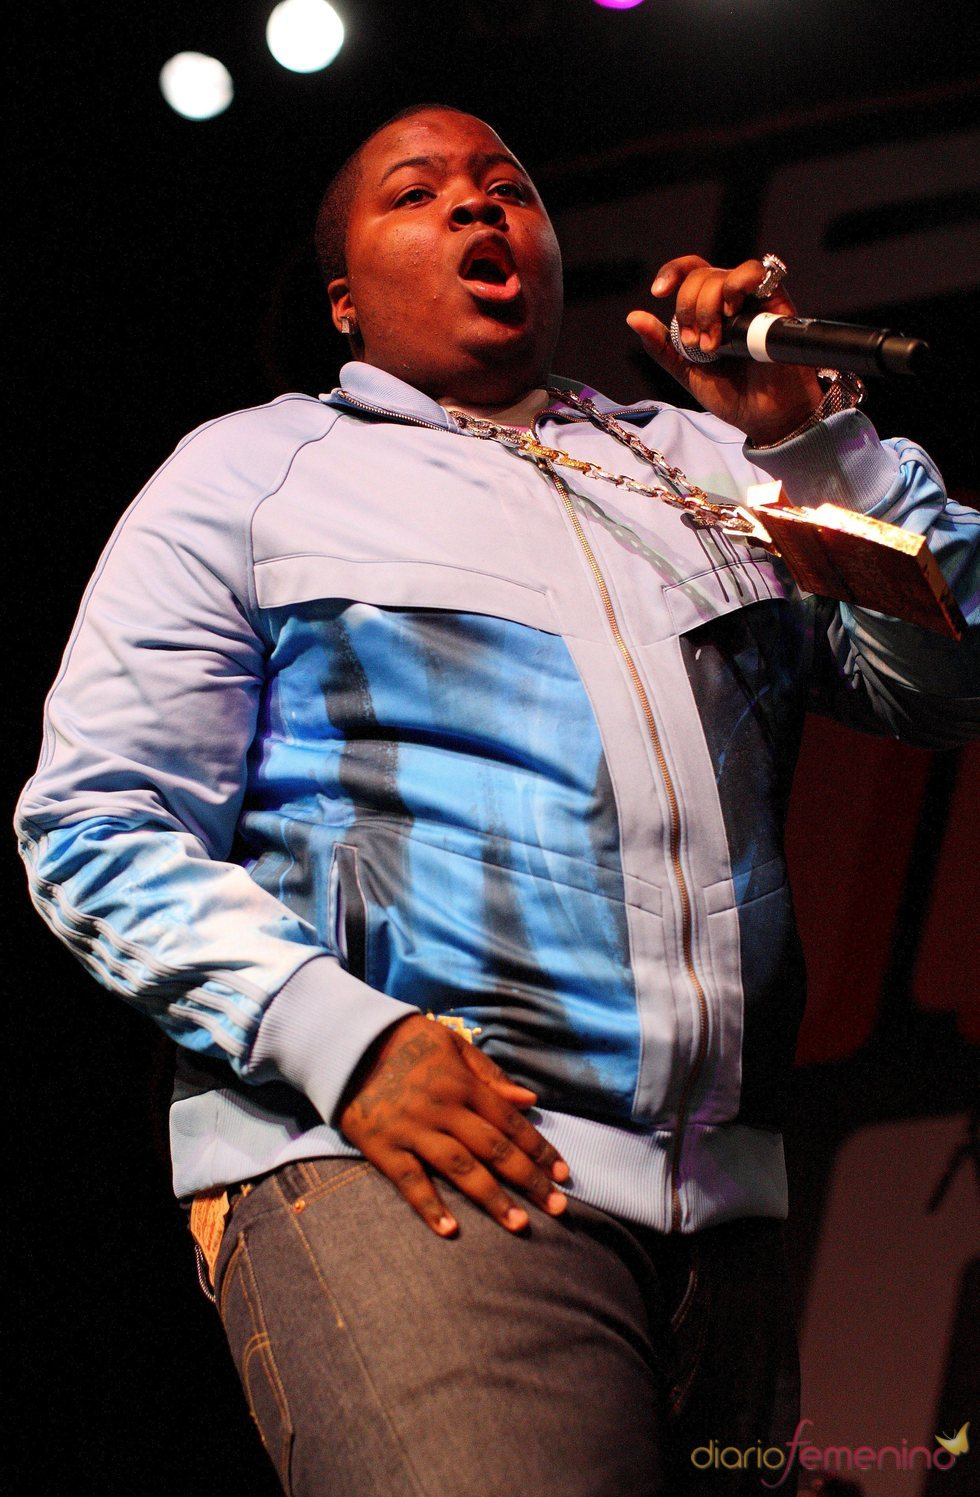 El rapero Sean Kingston, grave tras un accidente